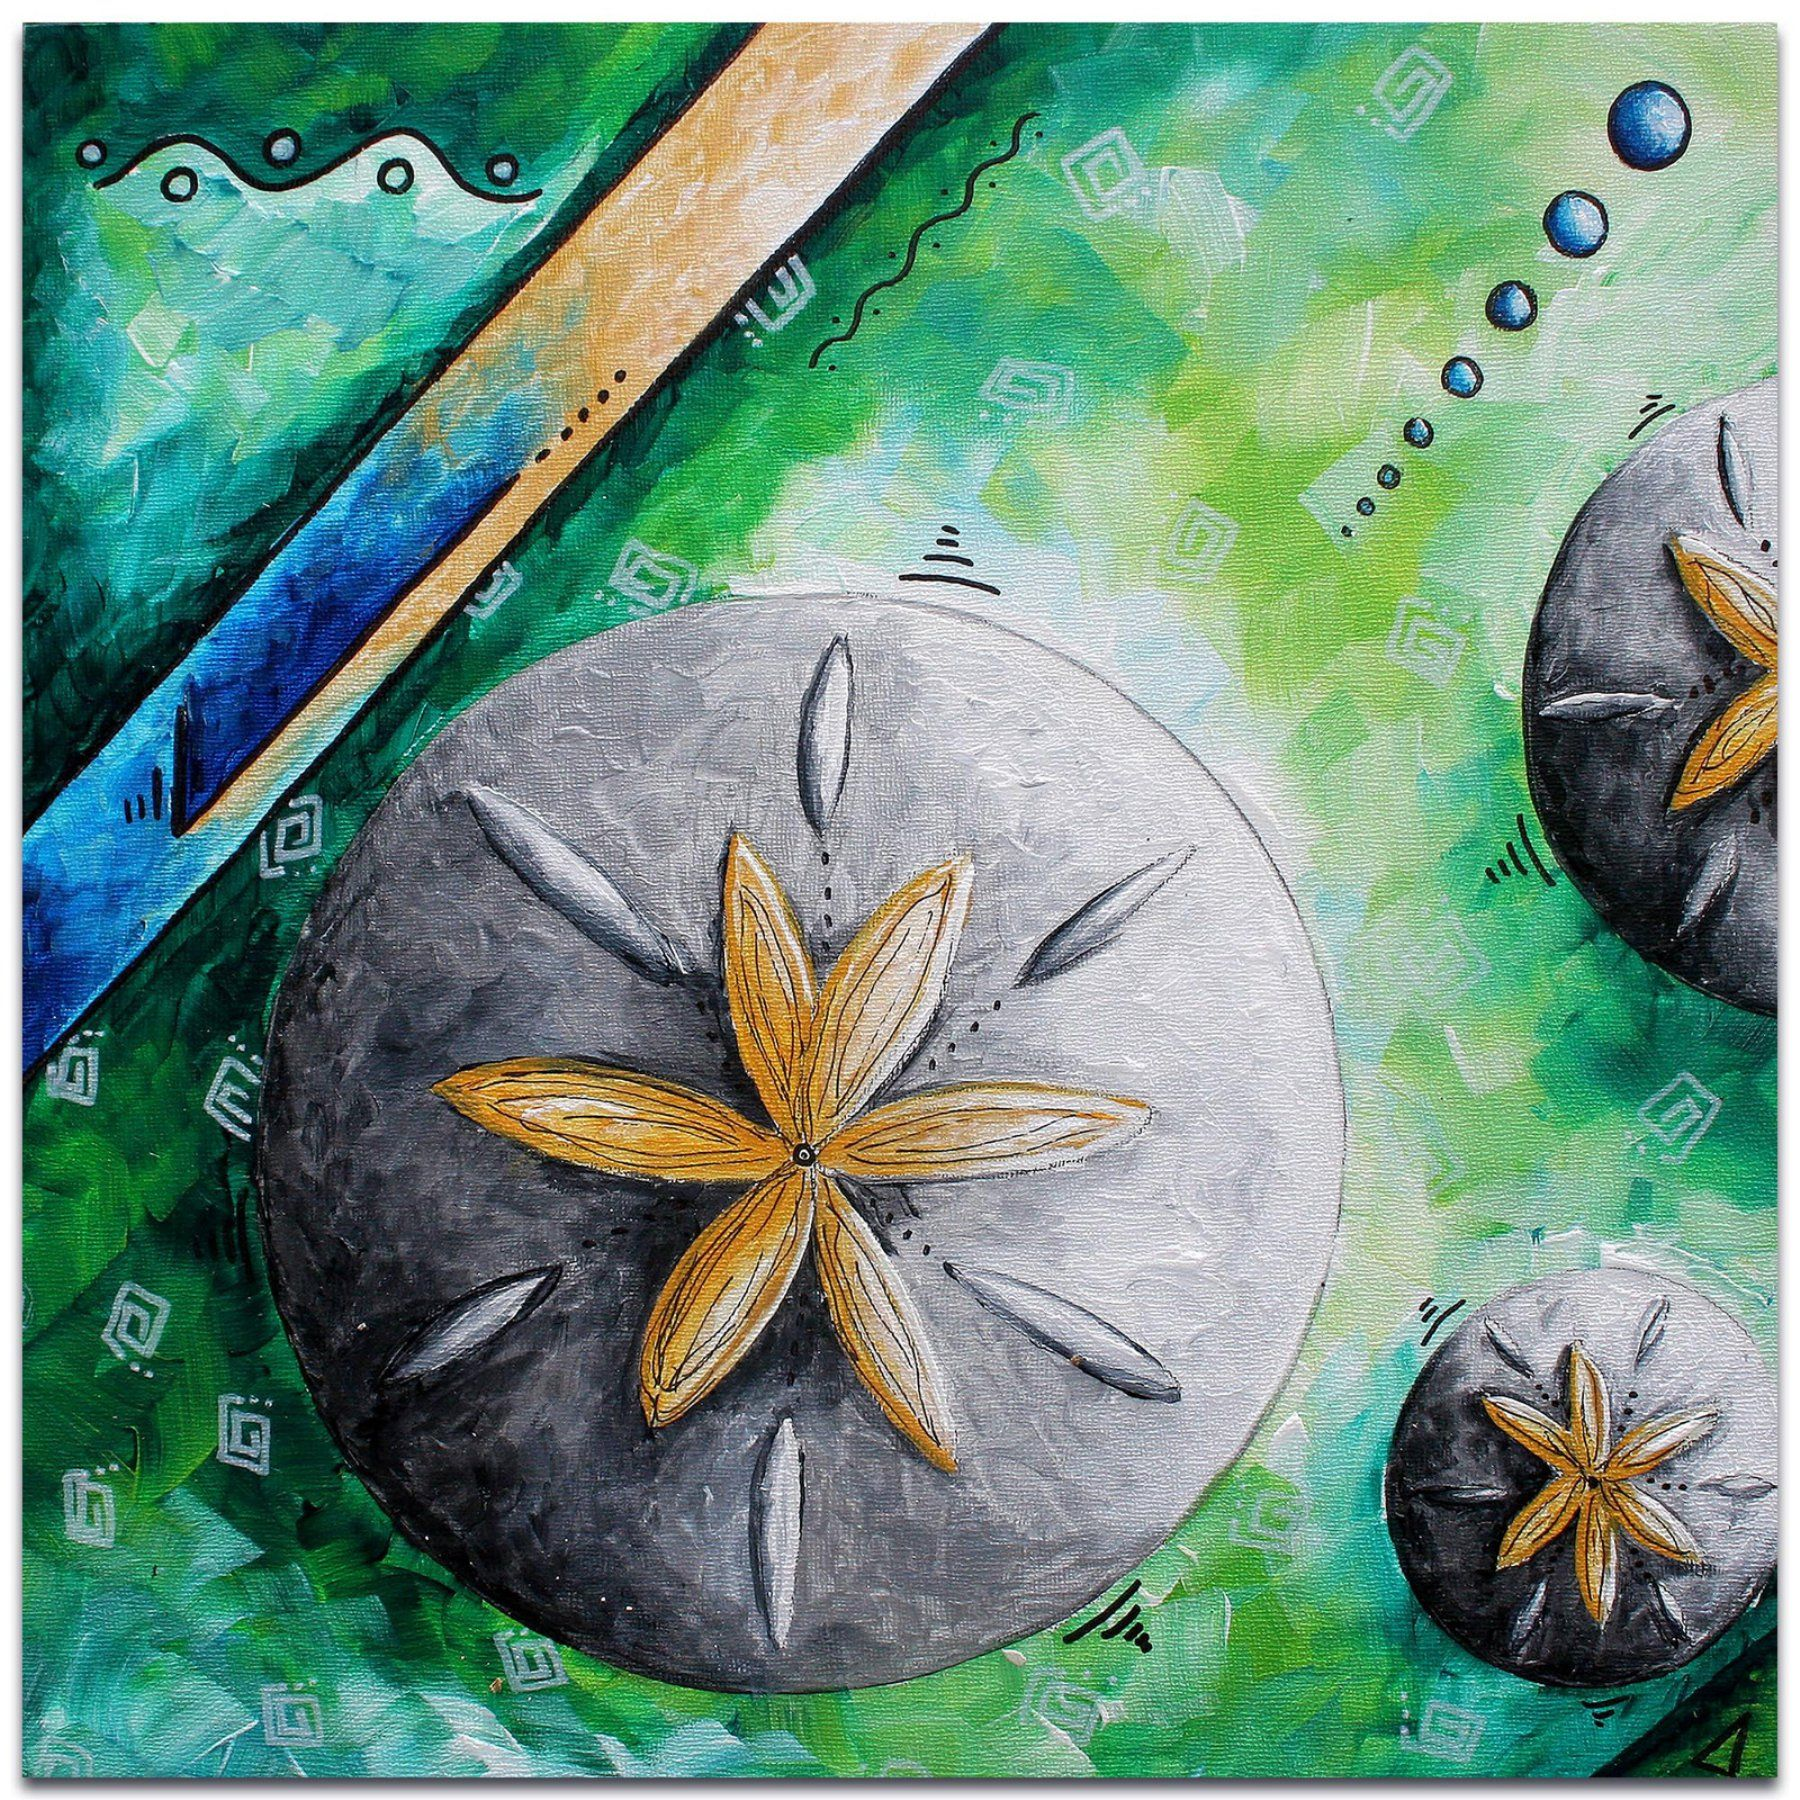 Metal Art Studio Sand Dollar Wall Art - MD0059AC